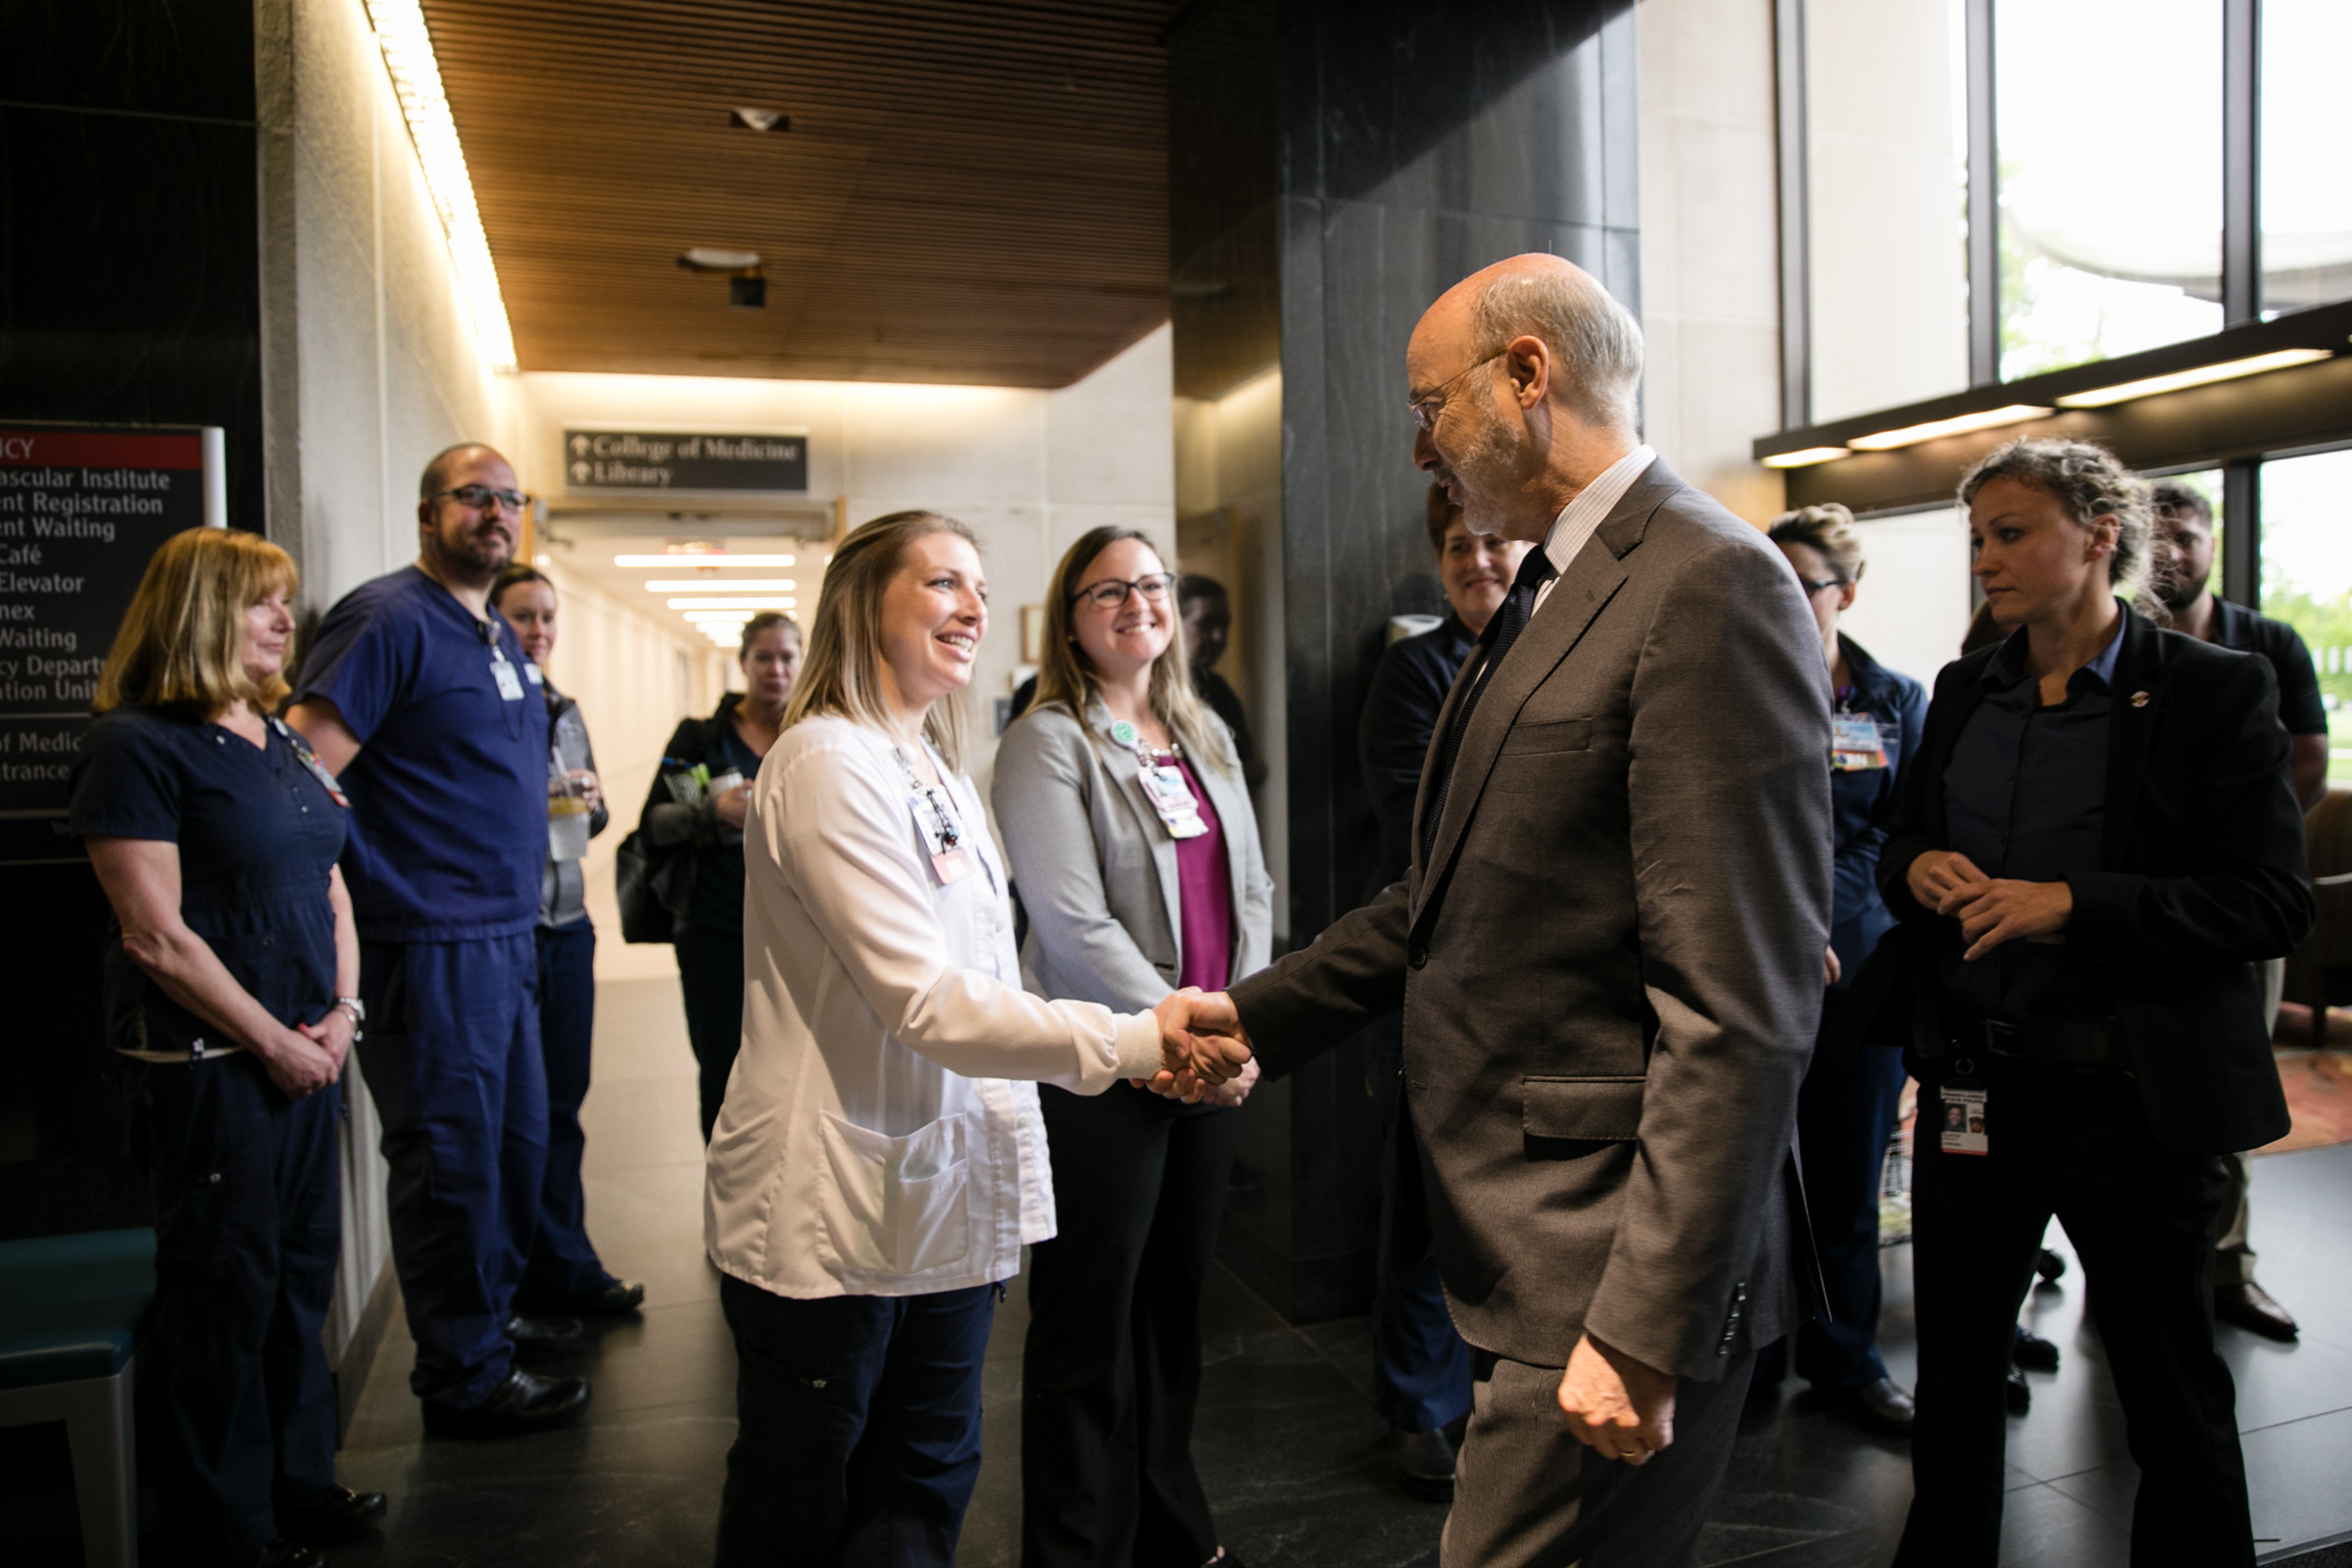 Gov. Tom Wolf, wearing a suit, shakes hands with a woman wearing a medical jacket. Other people in professional and medical attire look on. A hallway and large windows are in the background.